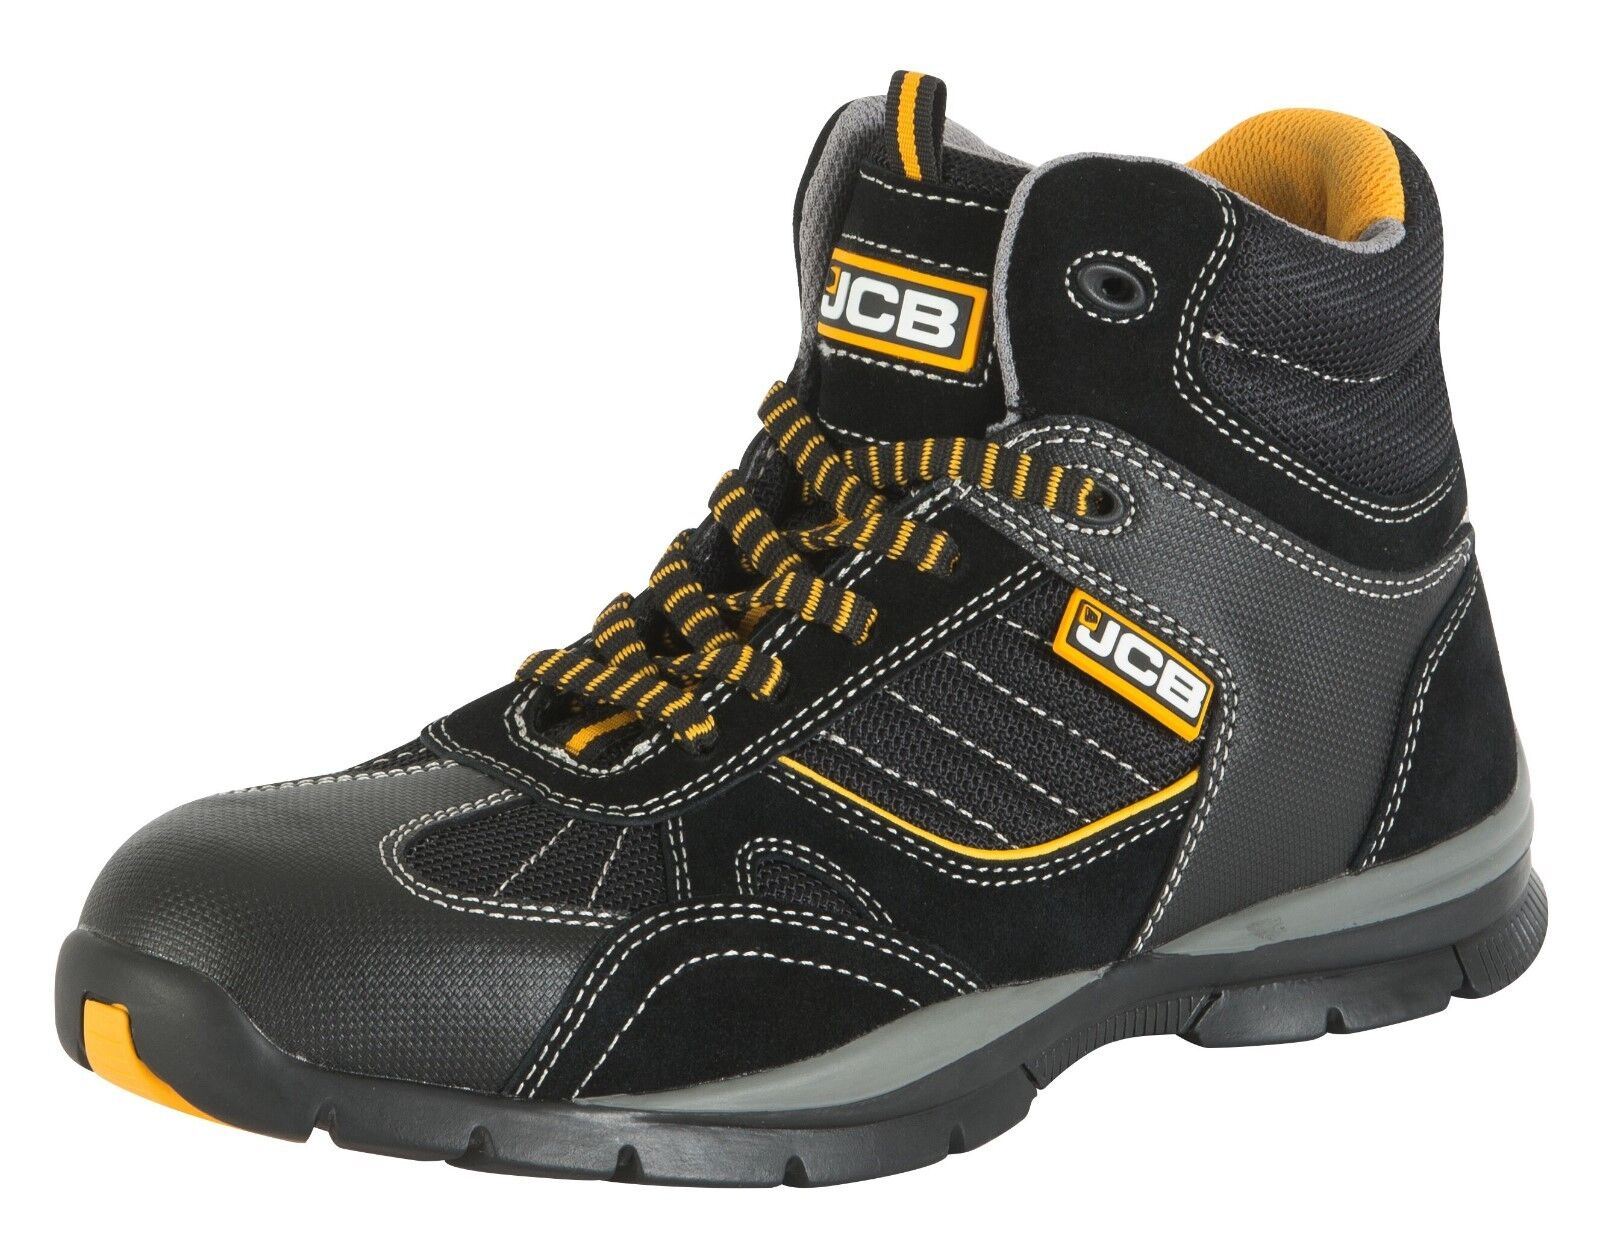 JCB Rock  Uomo Work Safety Stiefel Cap Schuhes Hiker Steel Toe Cap Stiefel Mid Sole Protection 28af1e